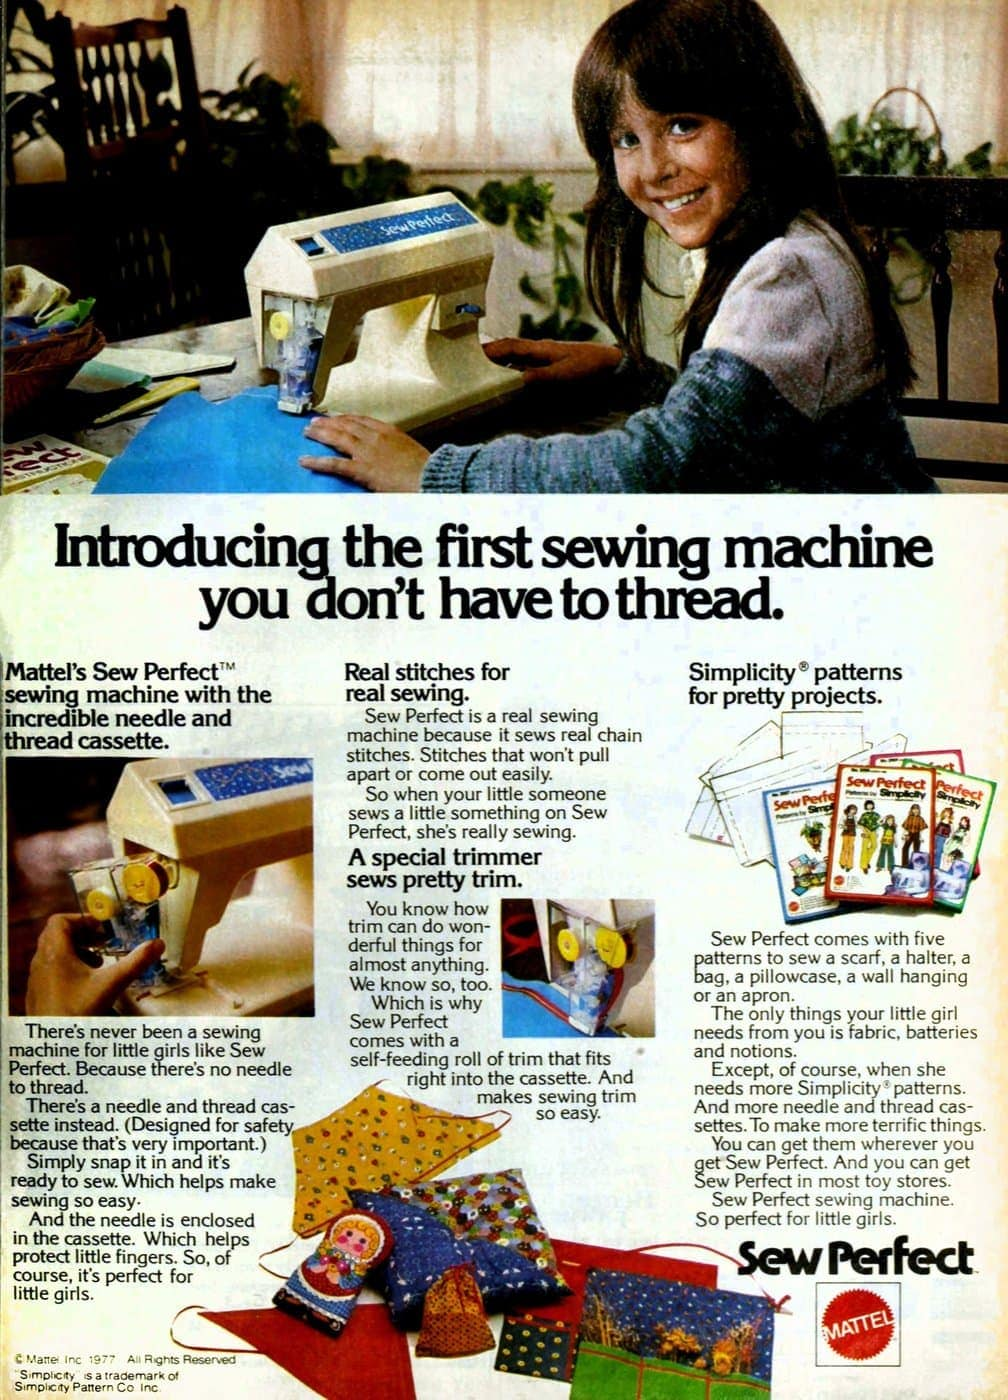 Vintage Mattel Sew Perfect toy sewing machine that worked from 1977